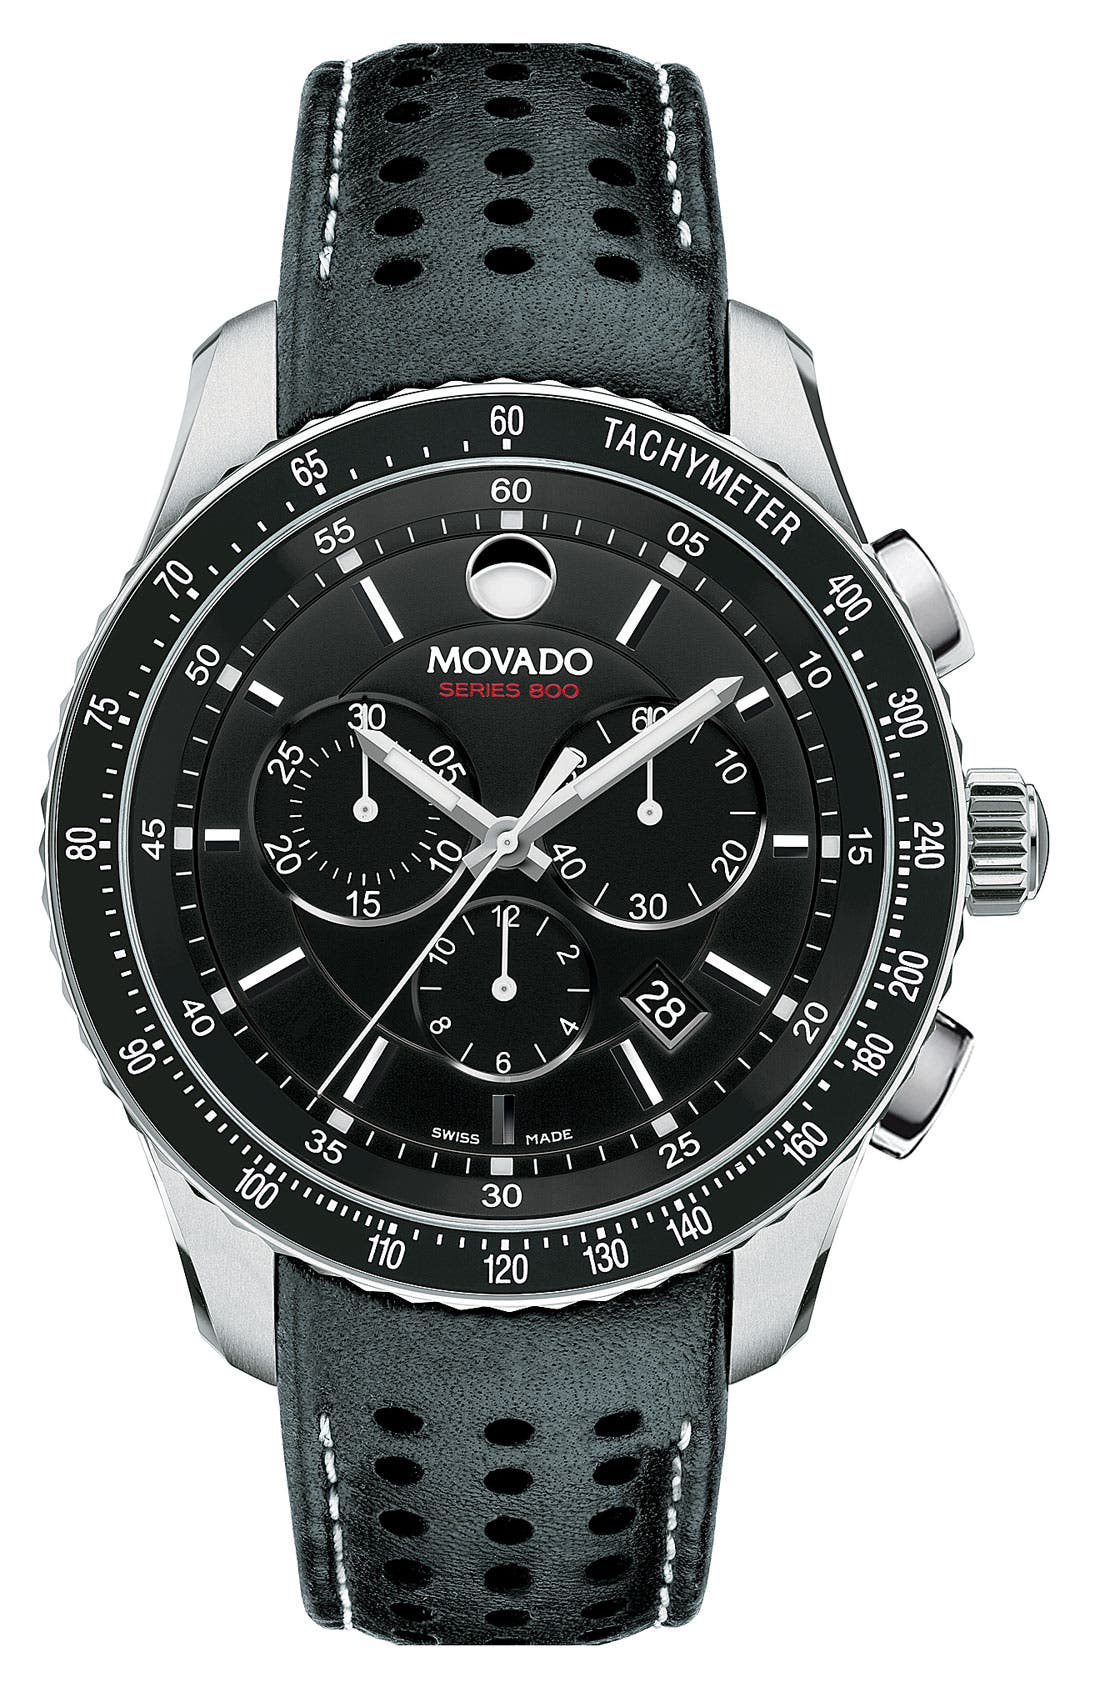 Main Image - Movado 'Series 800' Chronograph Strap Watch, 42mm